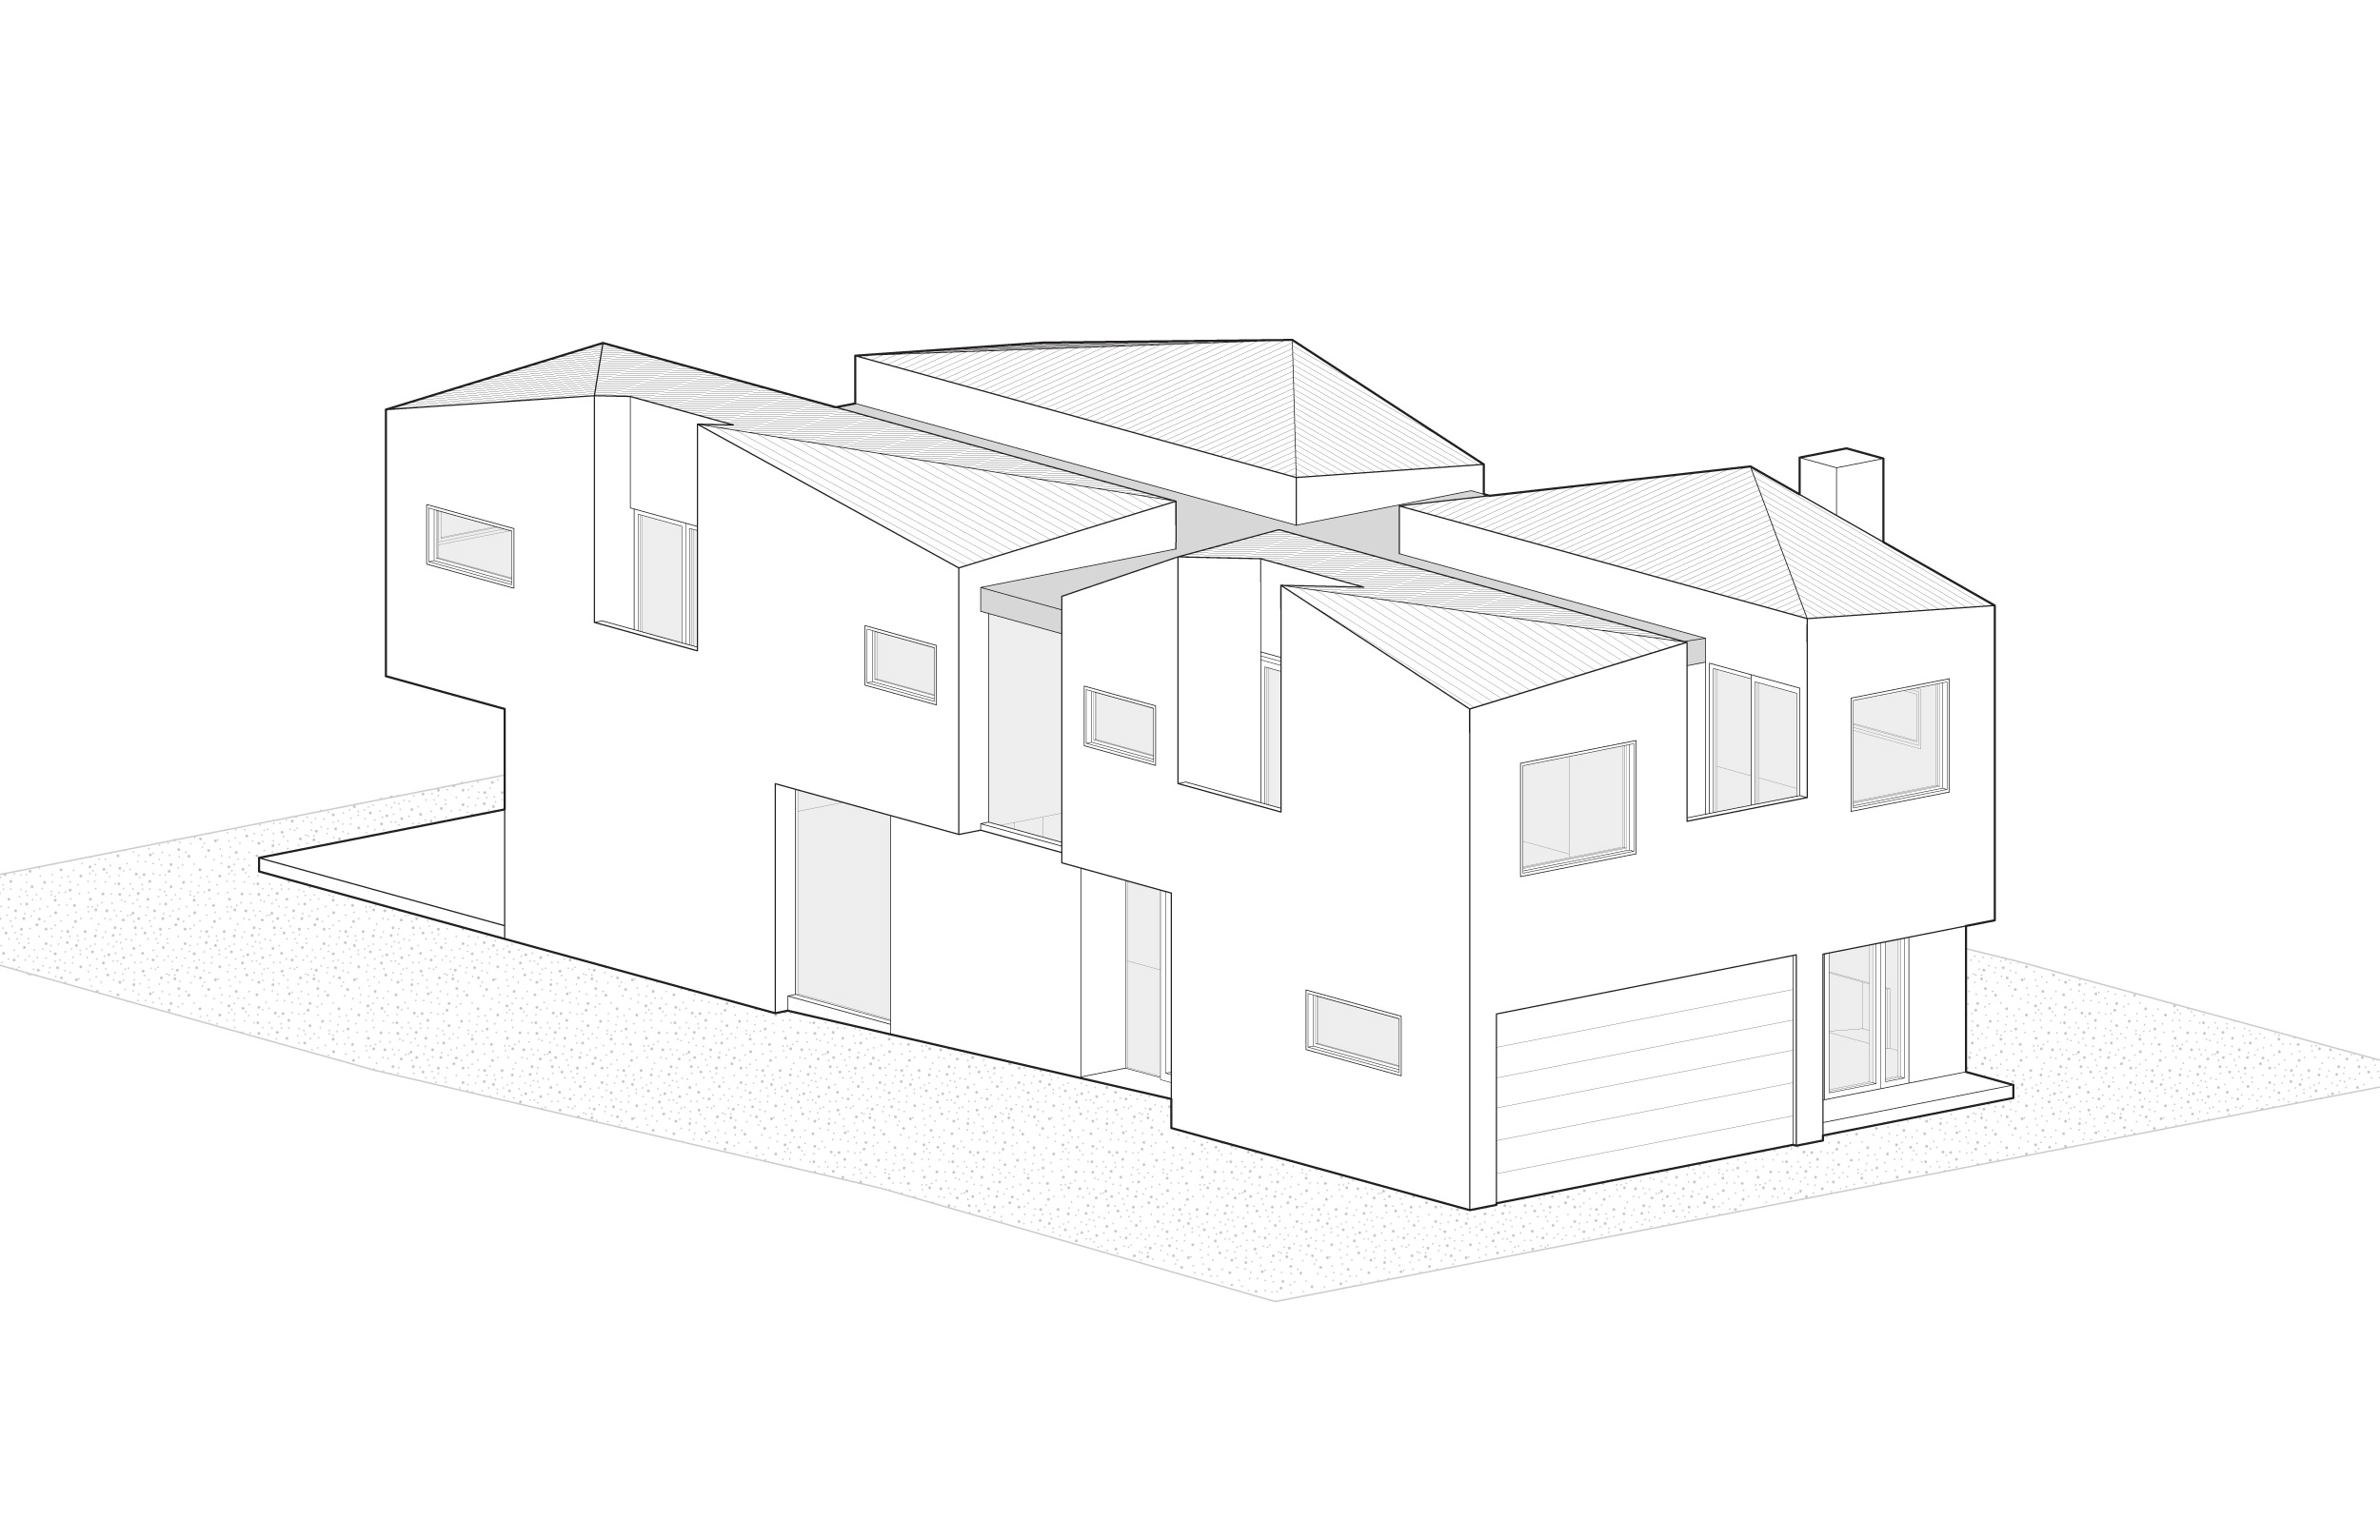 Resulting house.